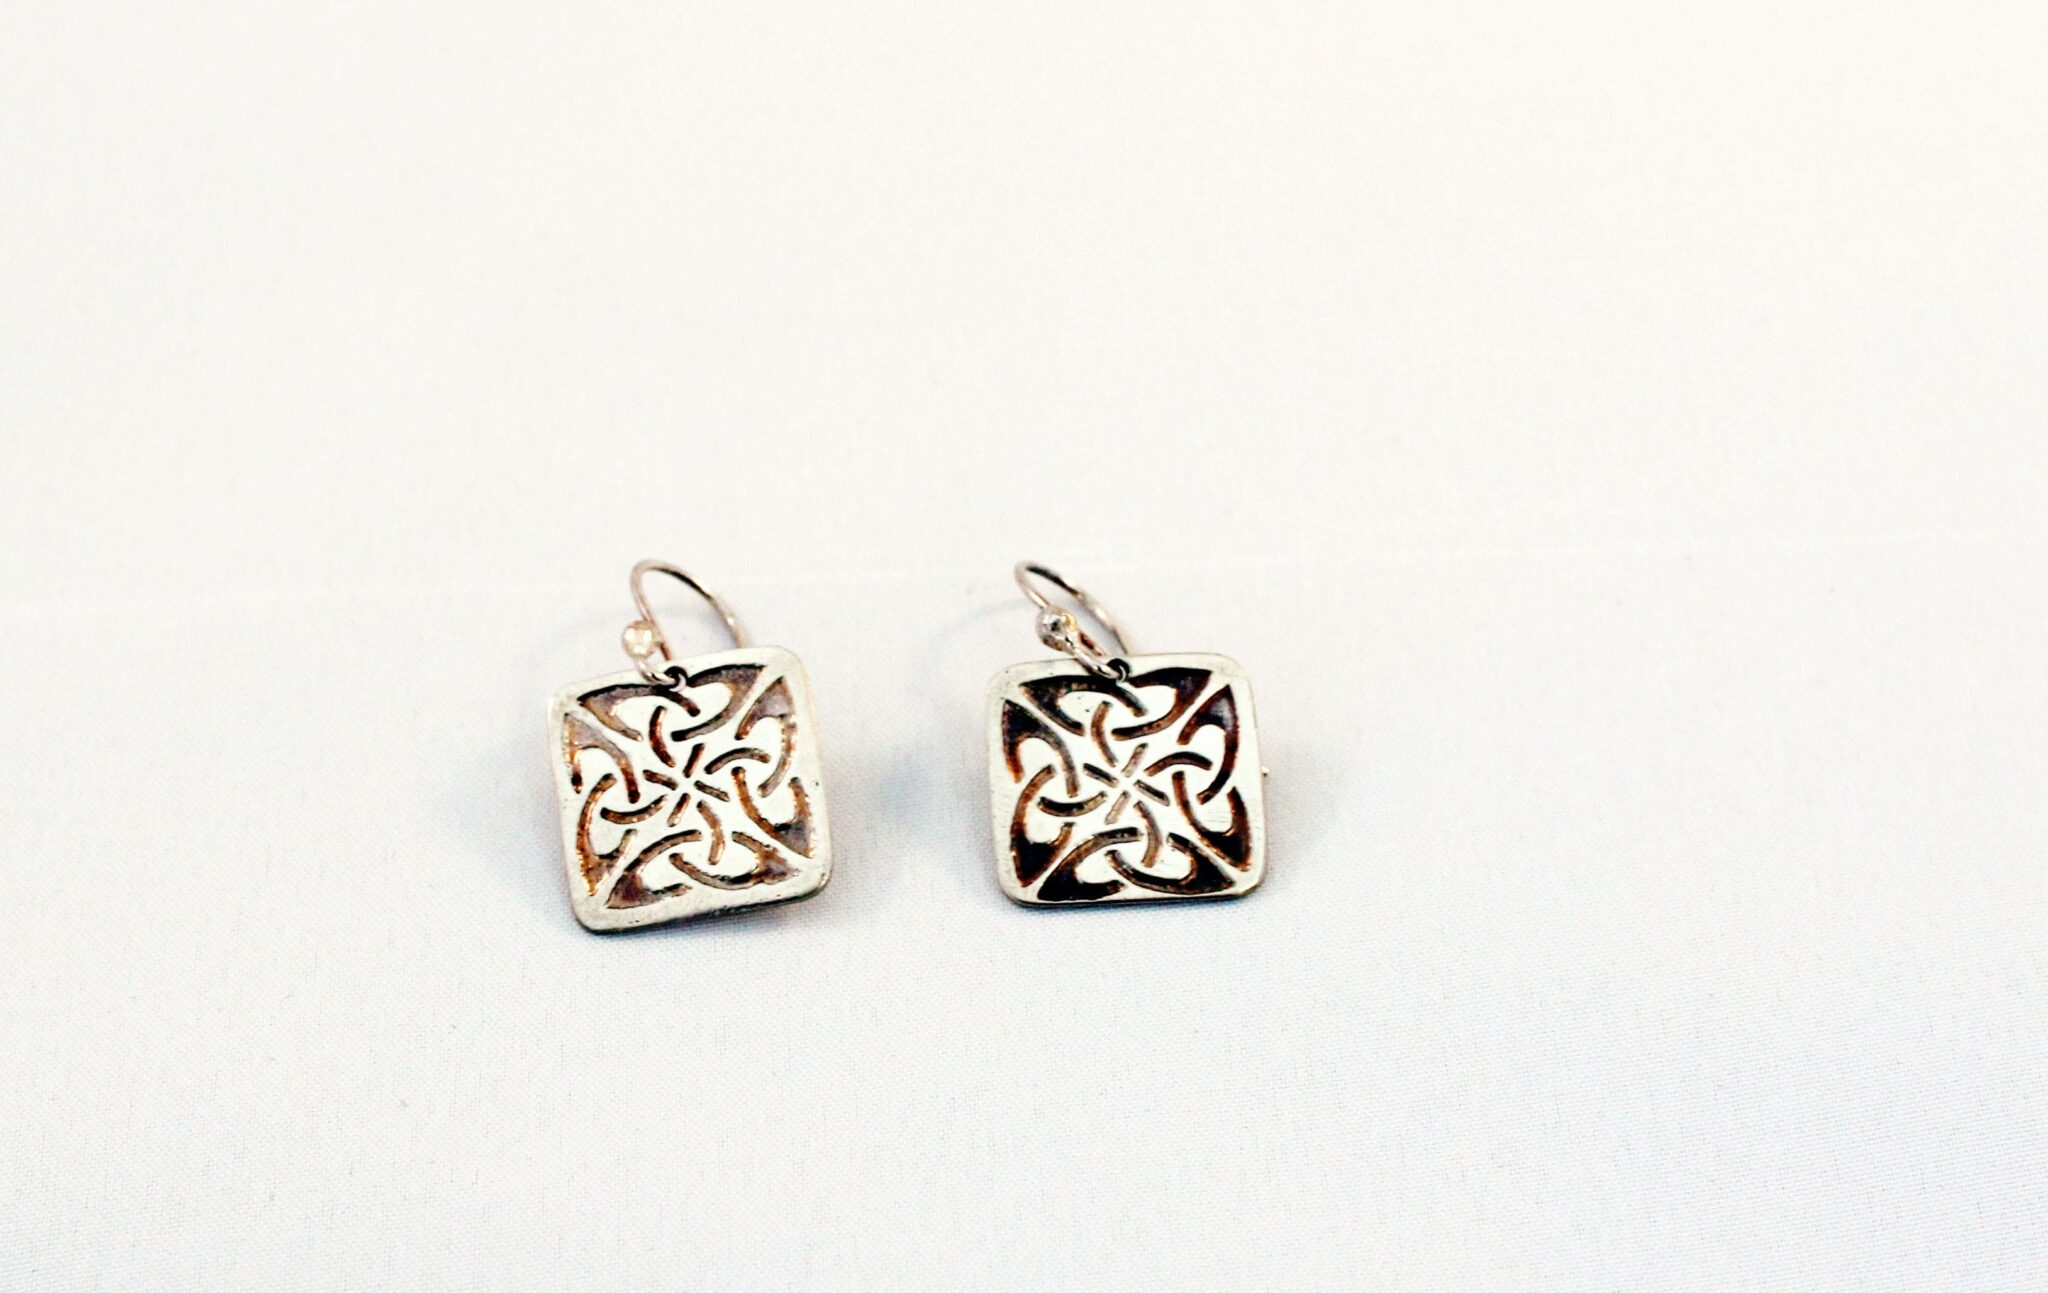 celtic-earrings-square-by-the-silver-goose-980106-thesilvergoose